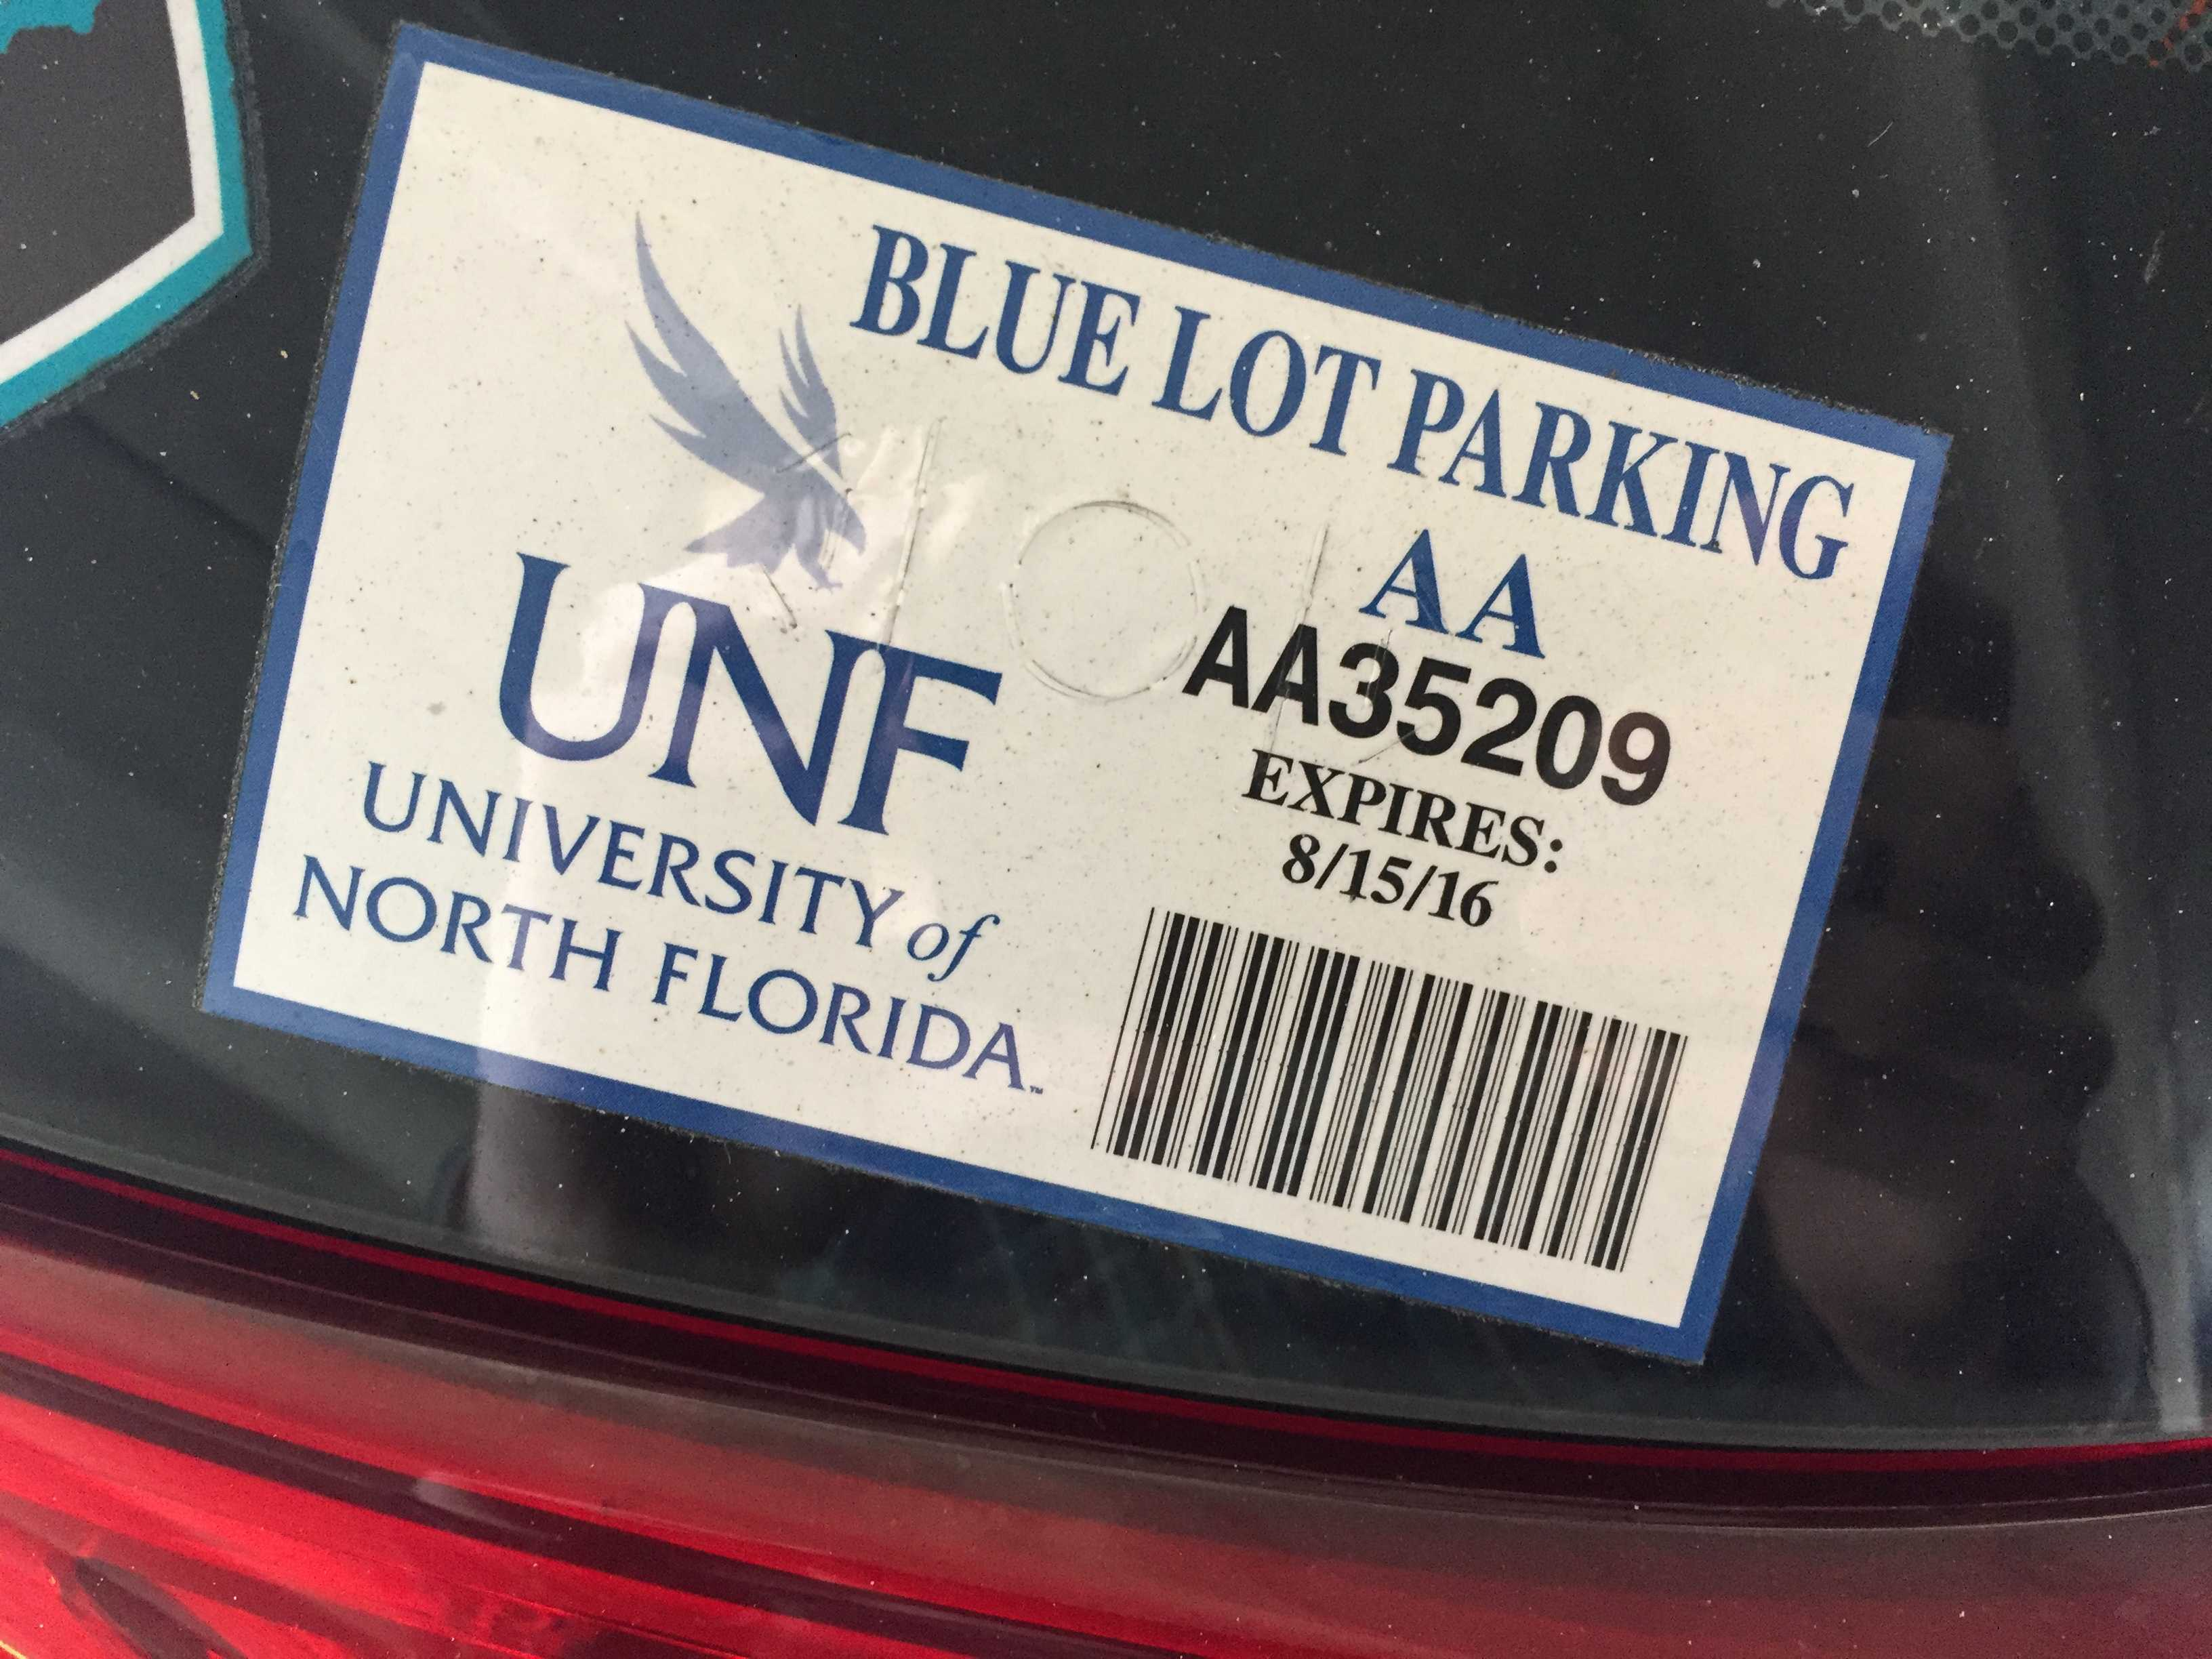 UPDATE: Parking permit sales unavailable